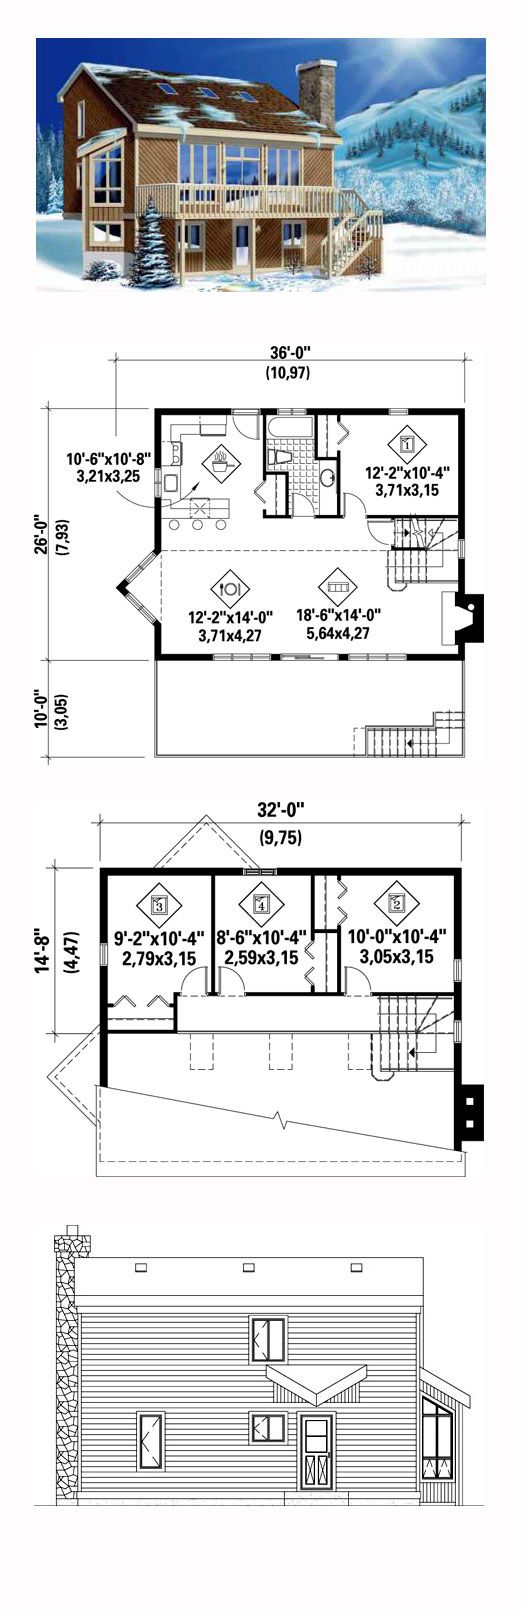 16 Best Images About Saltbox House Plans On Pinterest